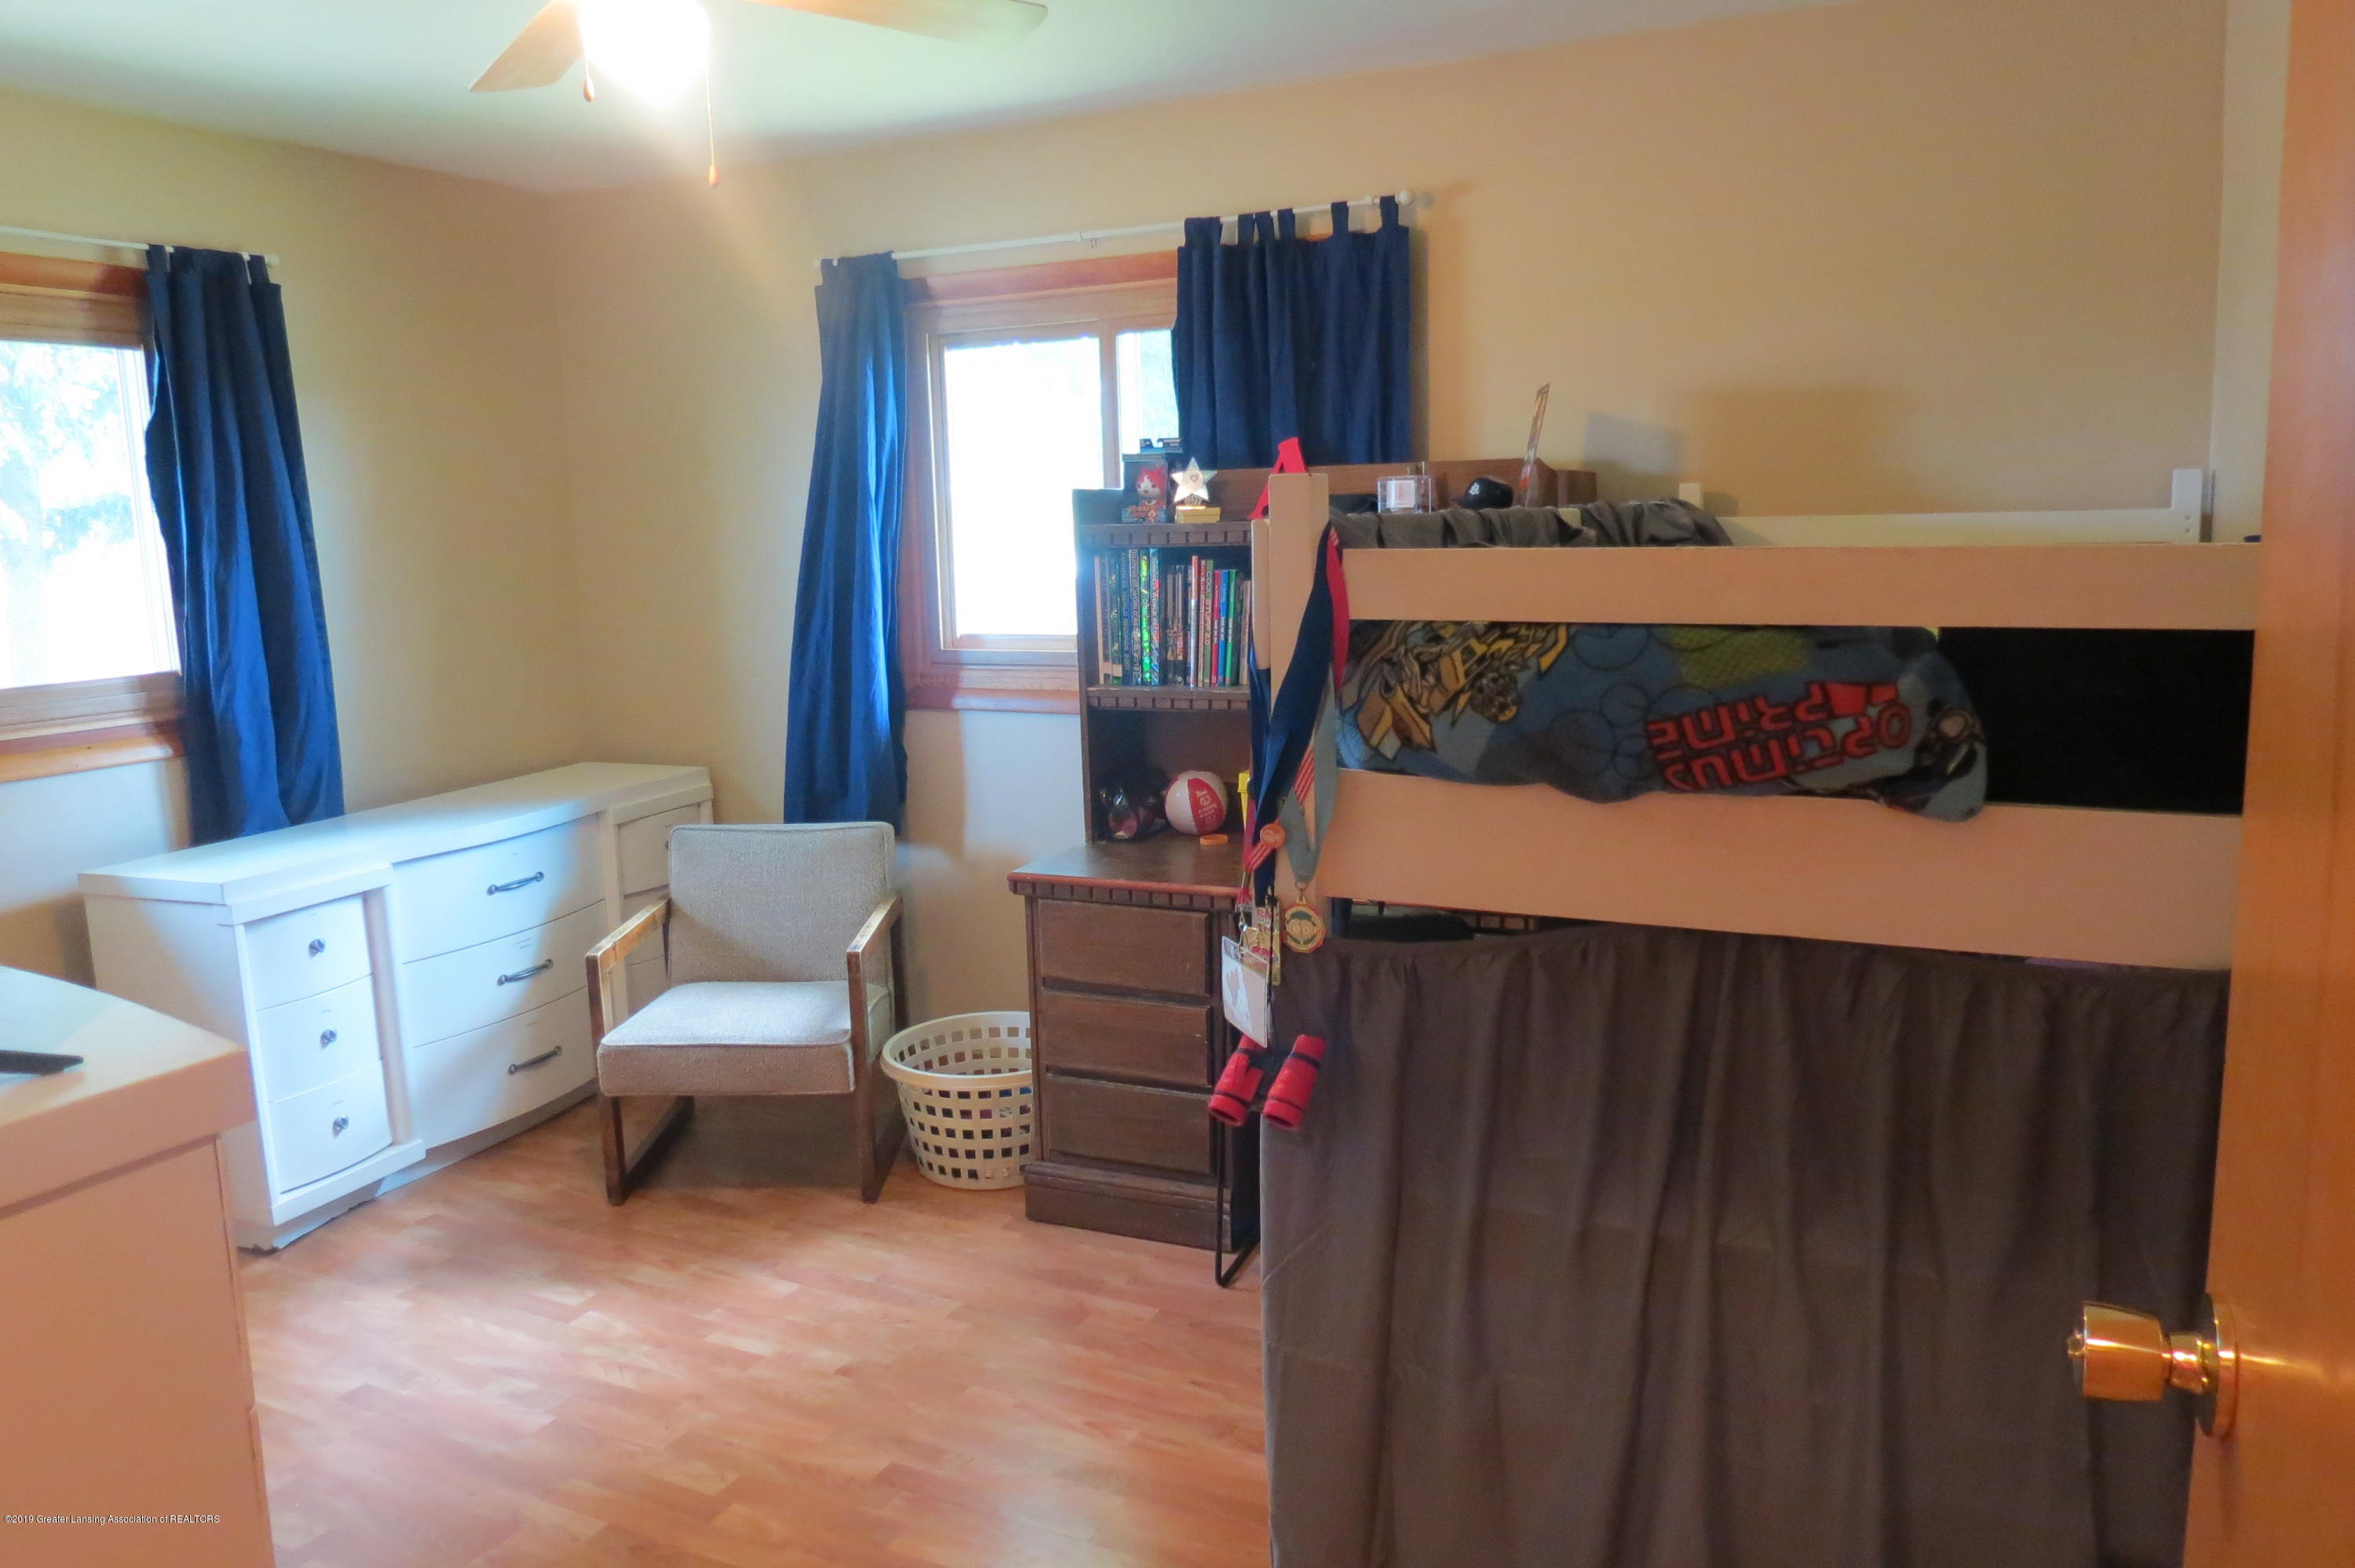 4007 N Shepardsville Rd - Bedroom - 21